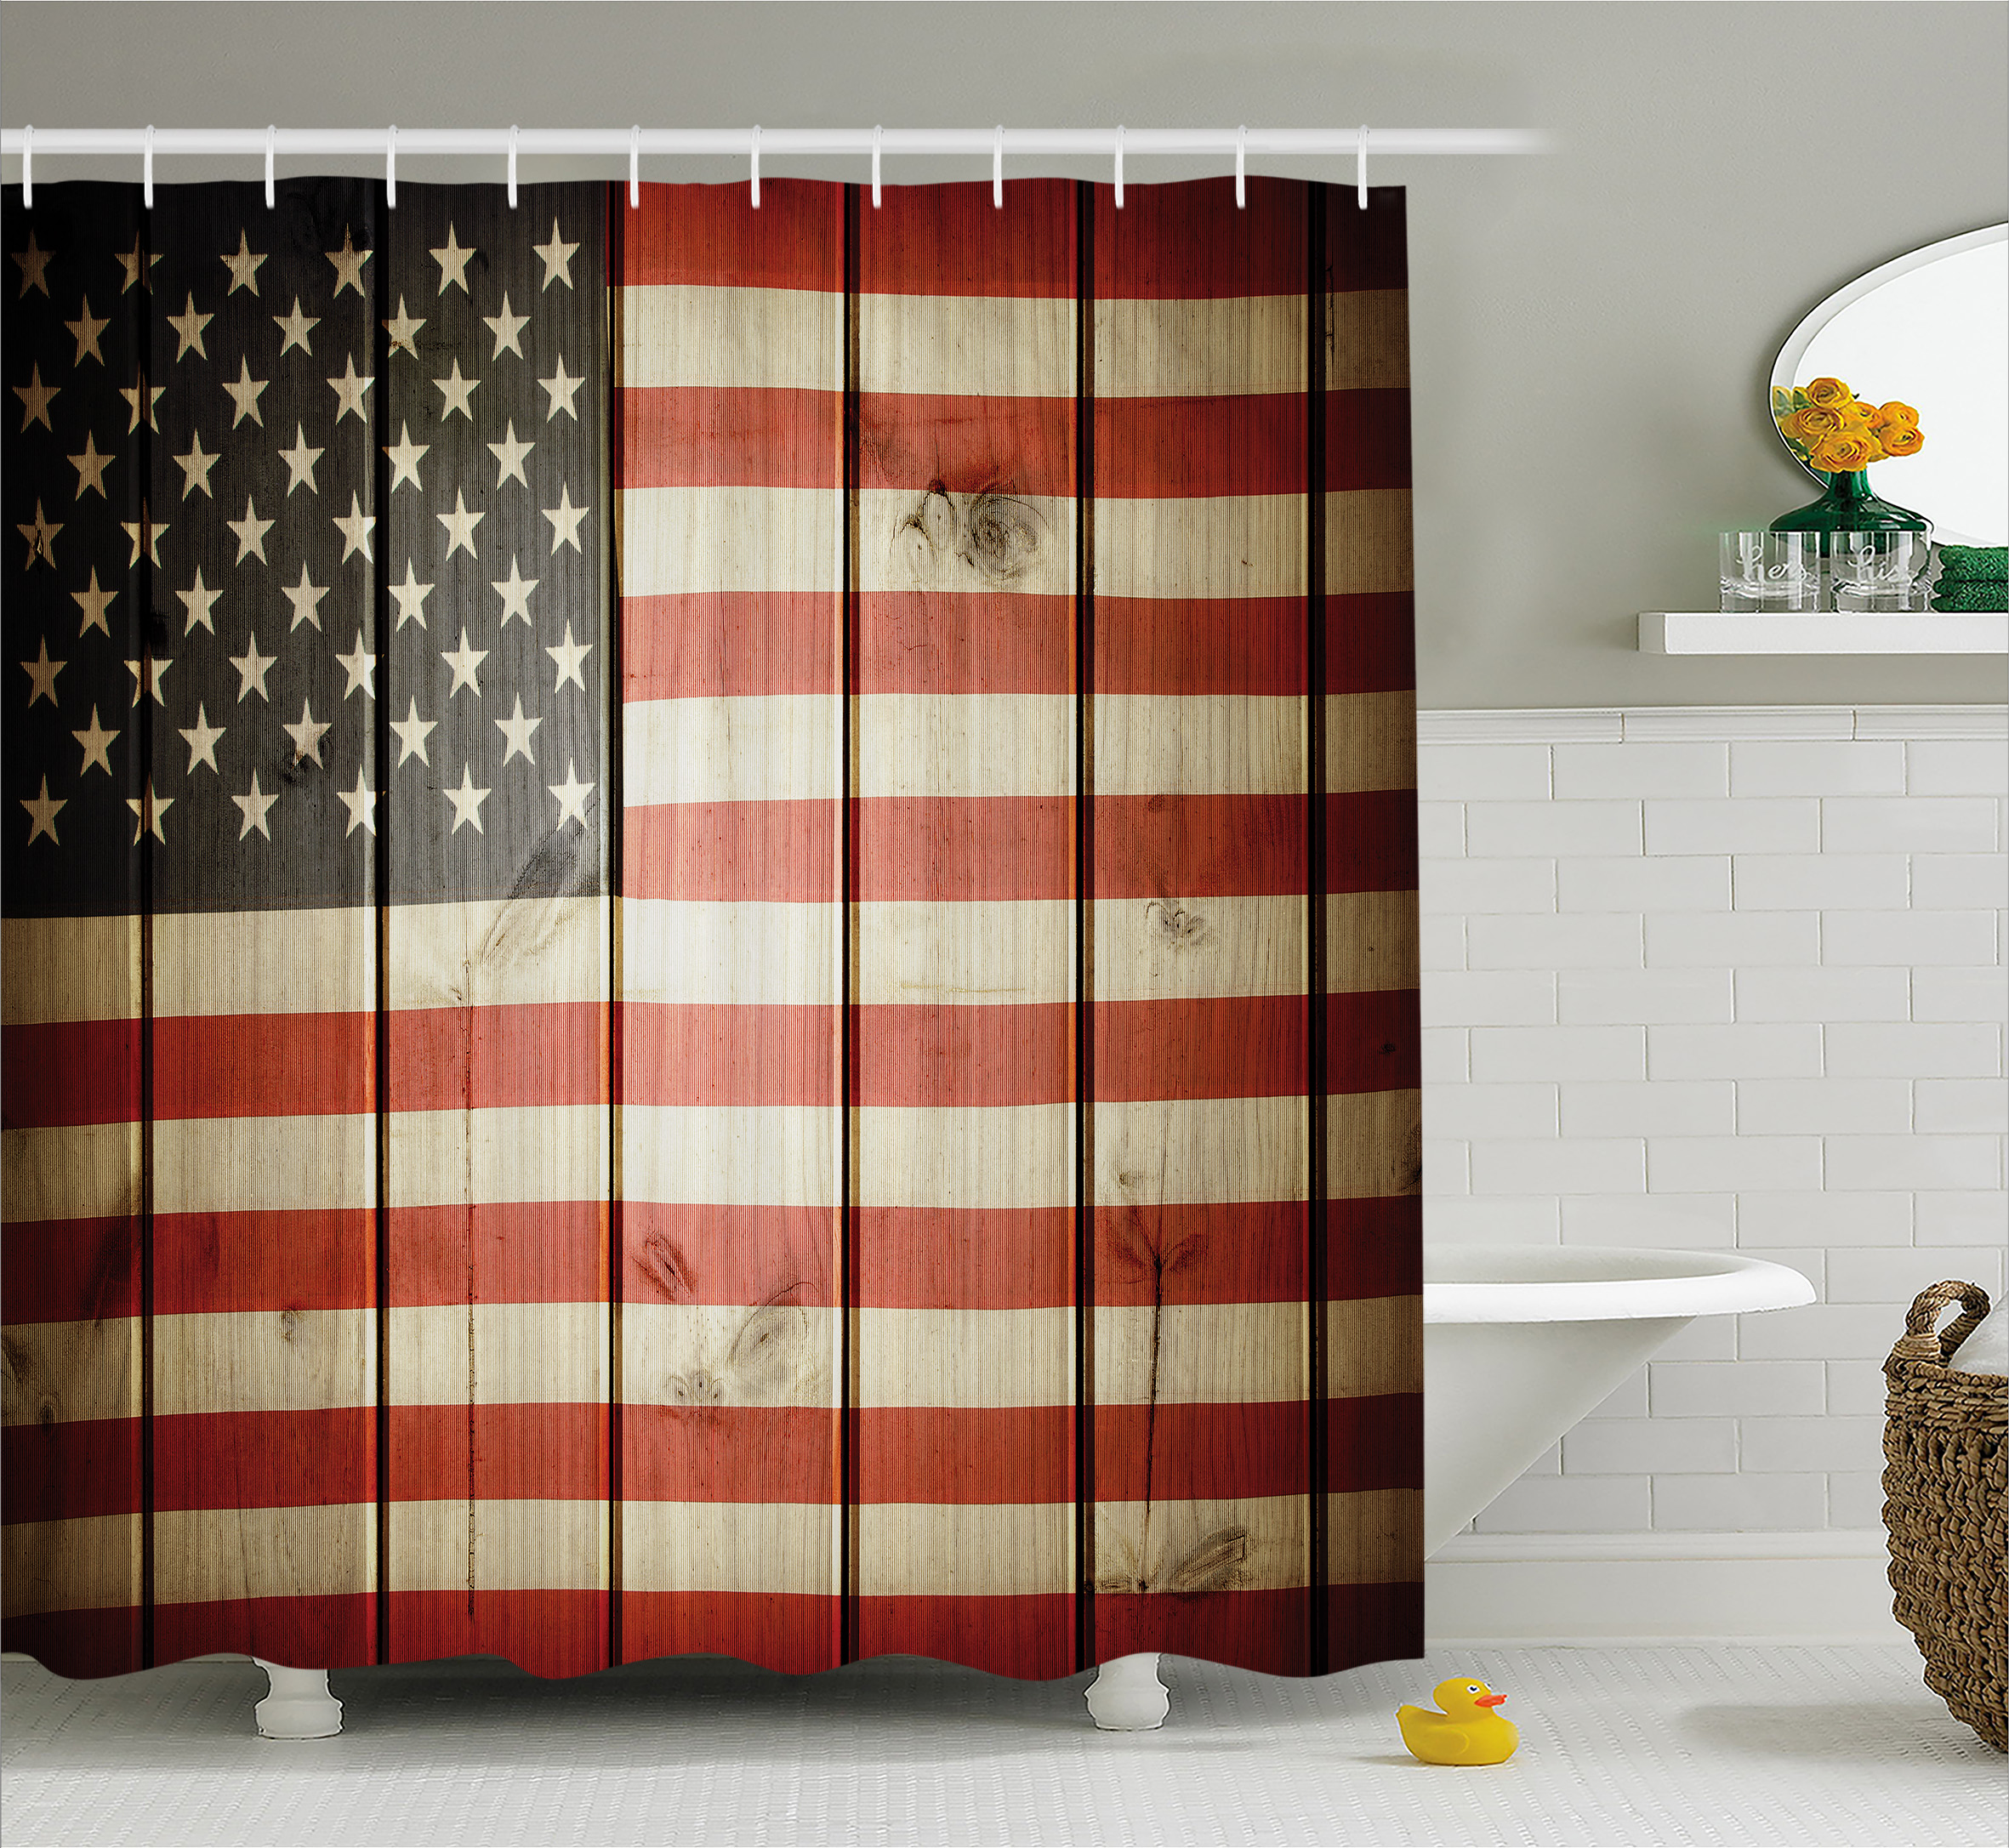 American Flag Decor Shower Curtain, Usa Flag over Vertical Striped Wooden Board Citizen Solidarity Kitsch Art, Fabric Bathroom Set with Hooks, 69W X 70L Inches, Blue Red, by Ambesonne